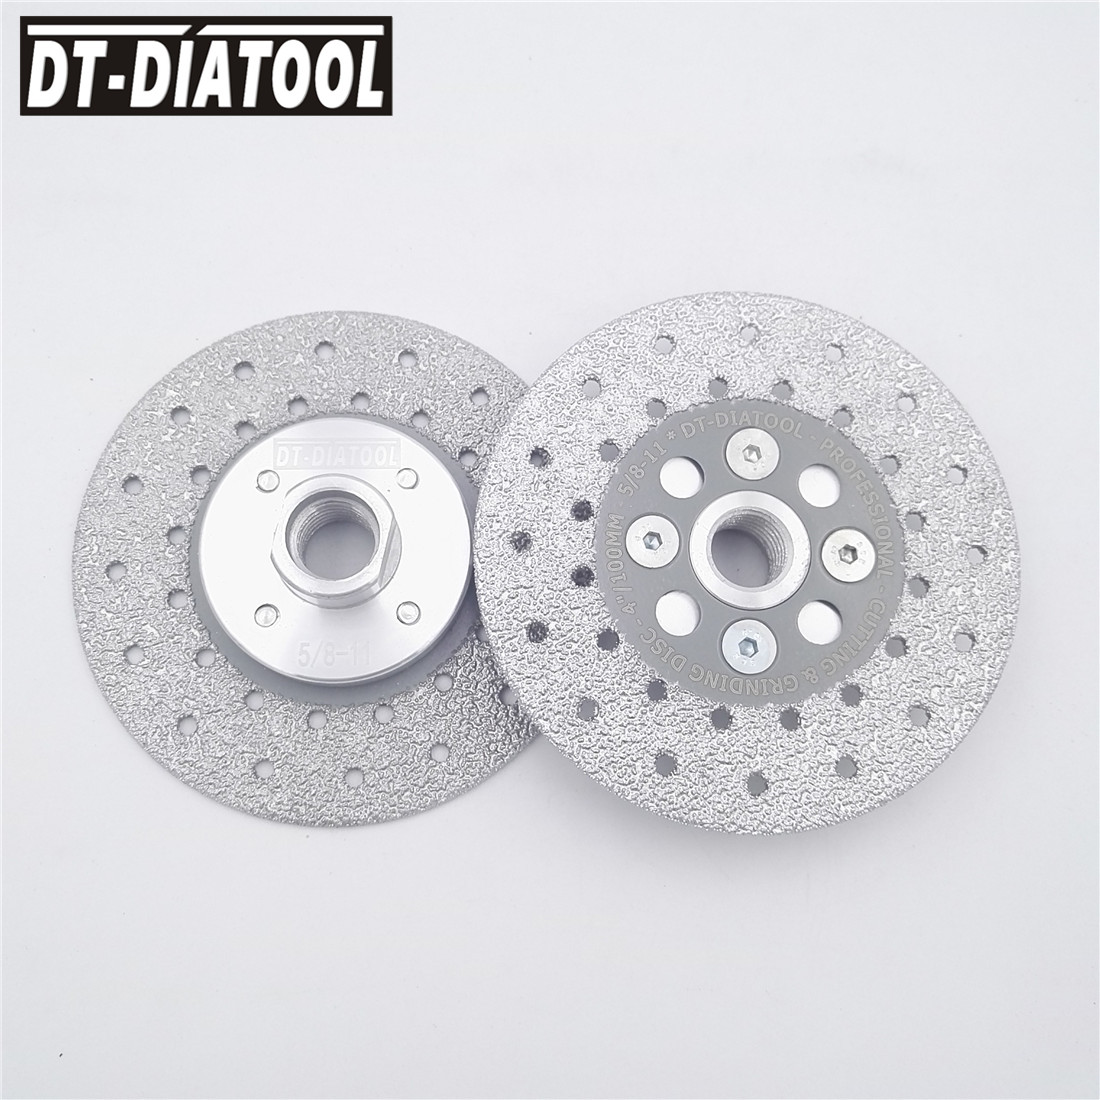 2pcs 4 Double Side Coated Diamond Cutting Disc Grinding wheel 5 8 11 Thread 100MM Saw